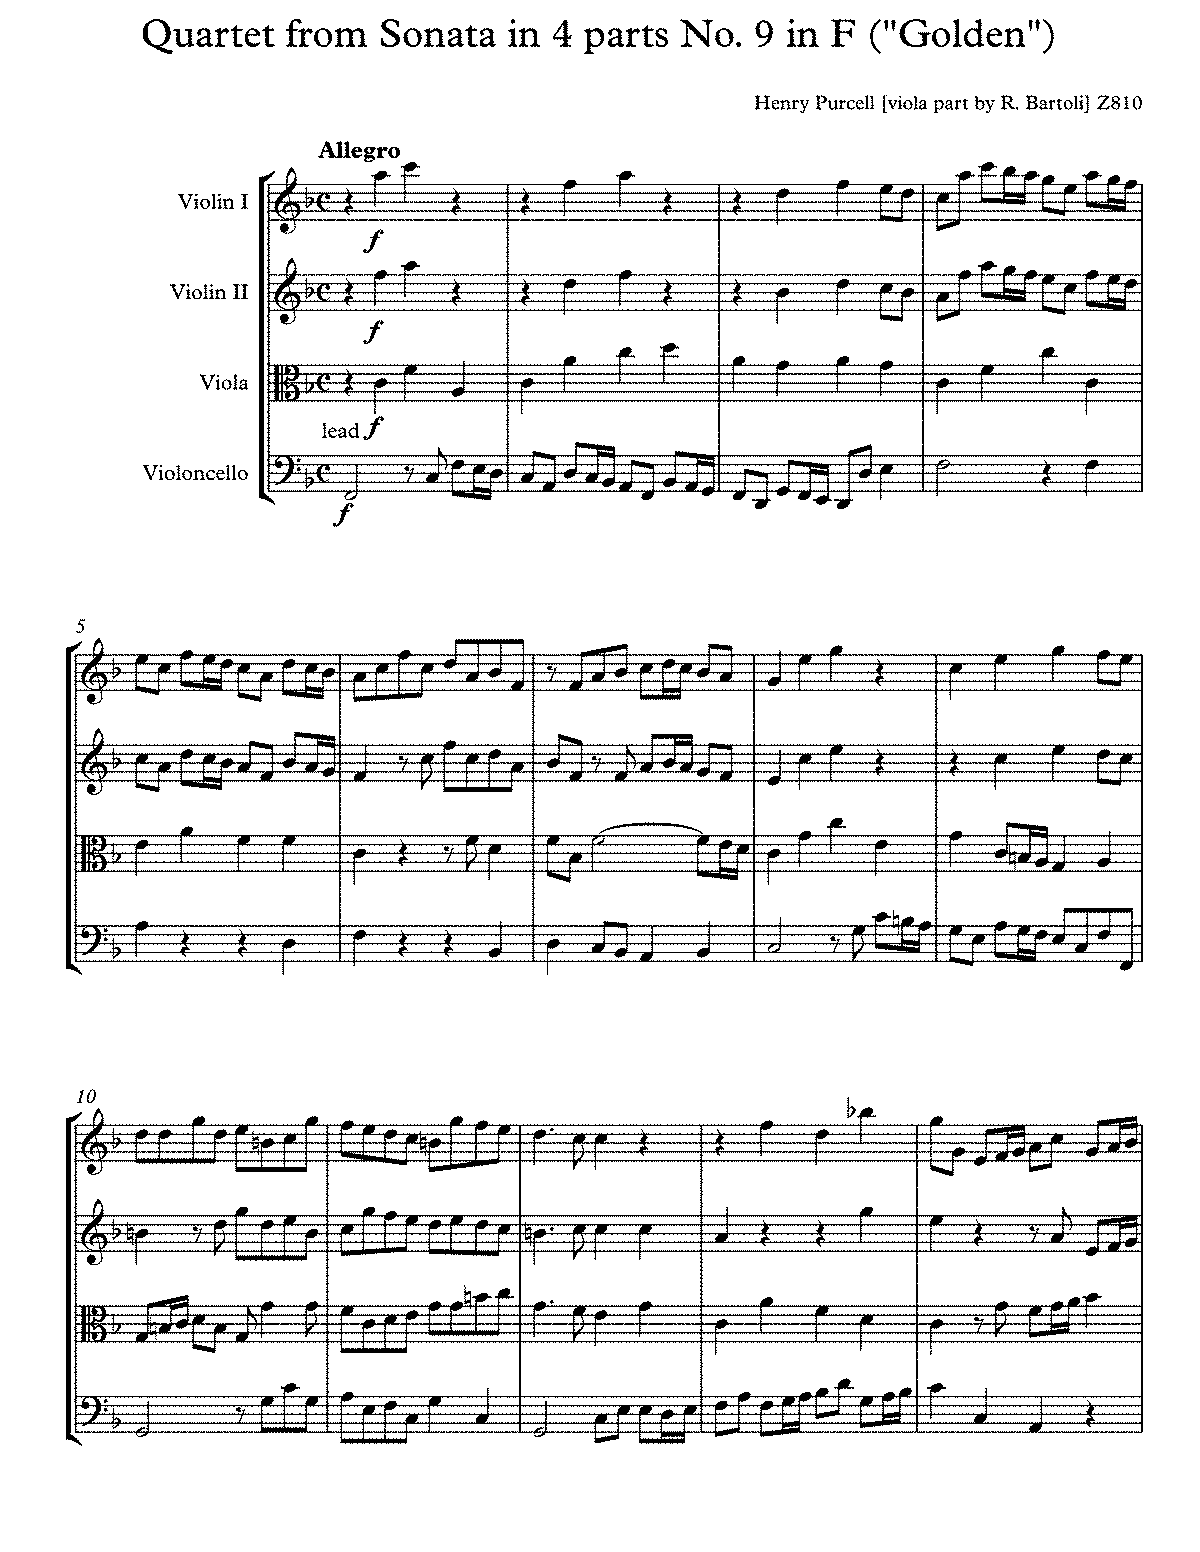 PMLP633139-Purcell Z810 Sonata in 4 parts No. 9 Golden in F s4 parts russ D - Full Score.pdf